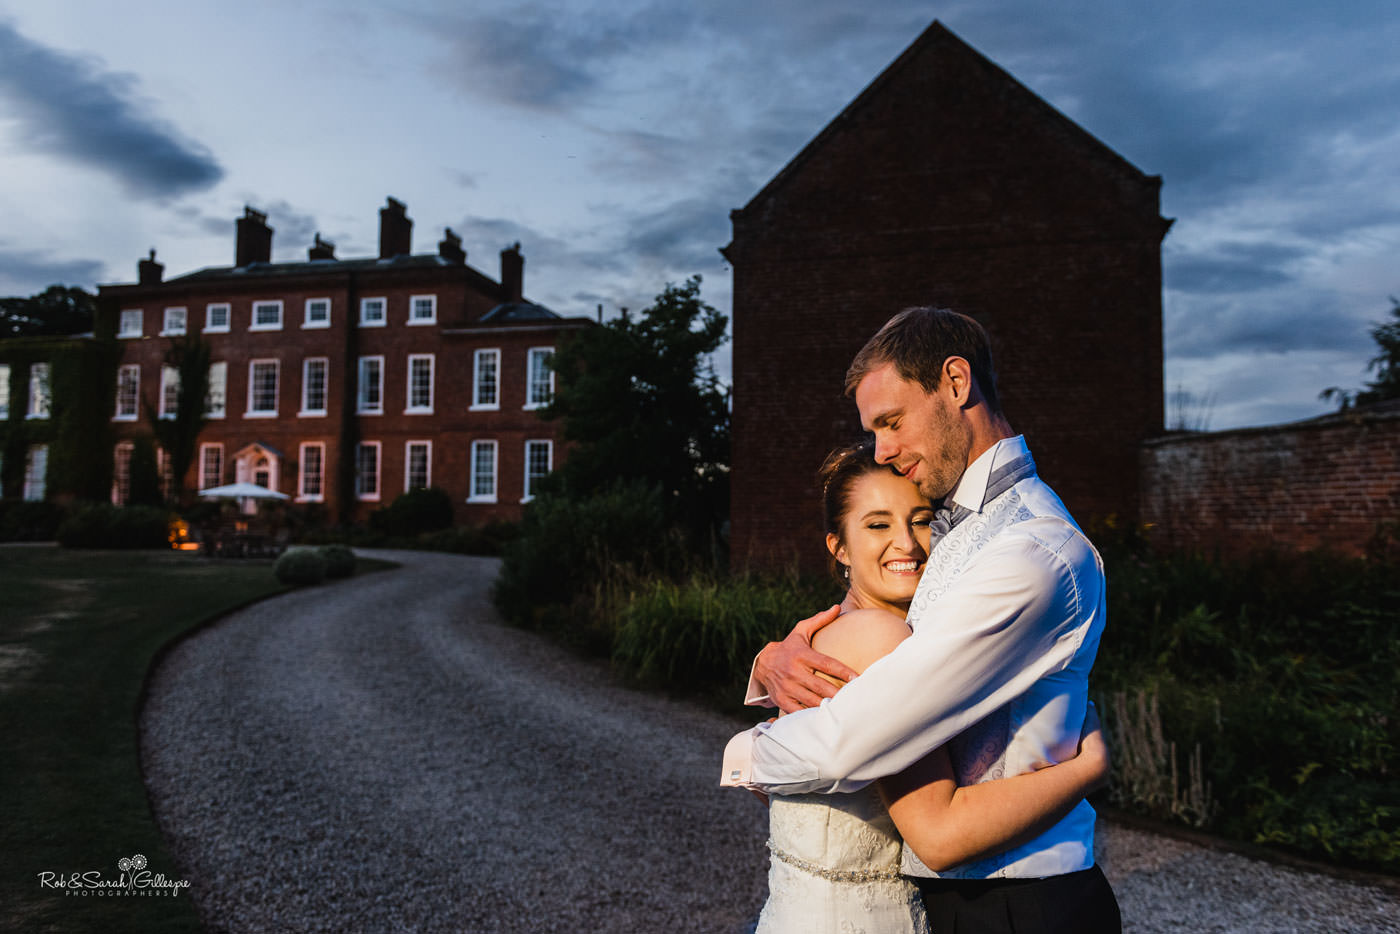 Bride and groom together at Delbury Hall at night